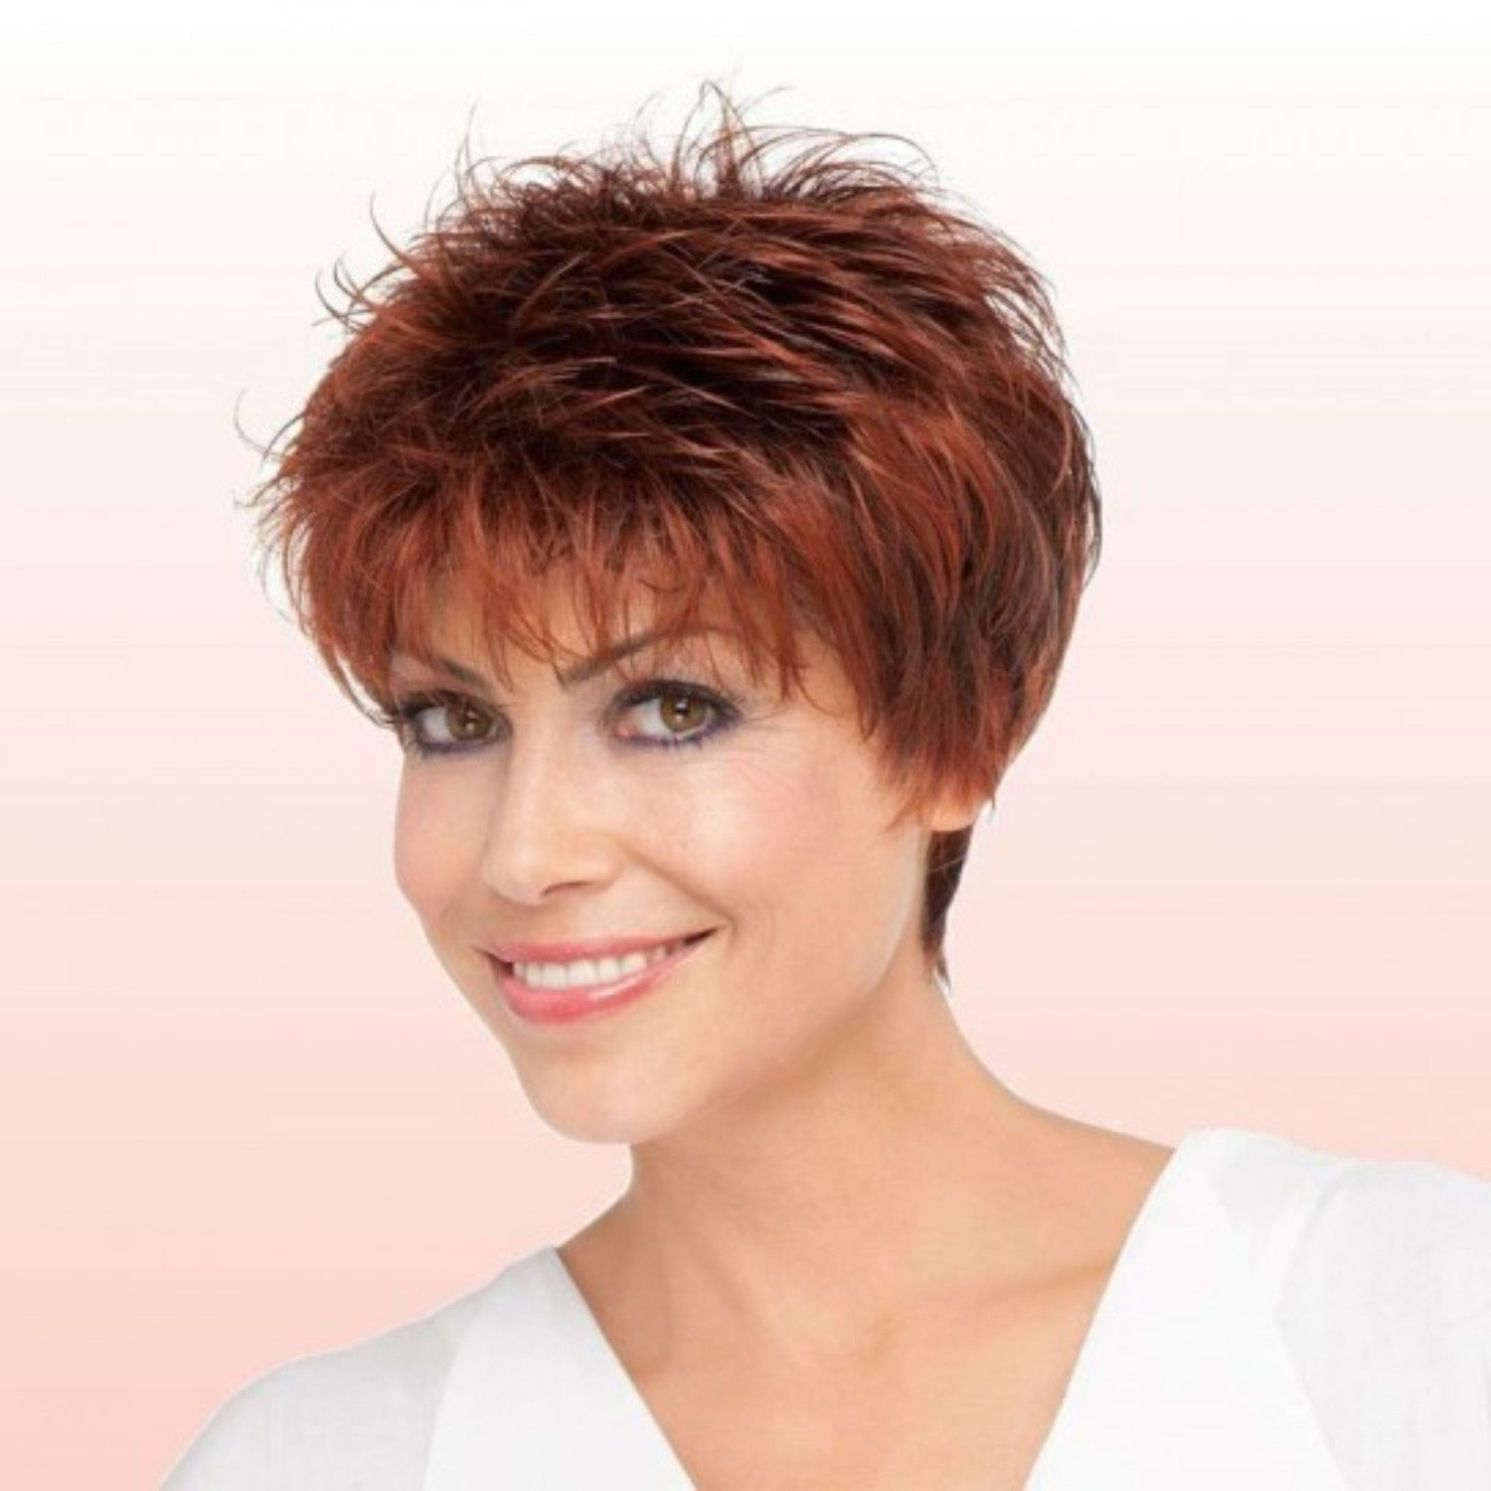 90 Classy and Simple Short Hairstyles for Women over 50 | Short shag  hairstyles, Short hair styles, Short hairstyles for women